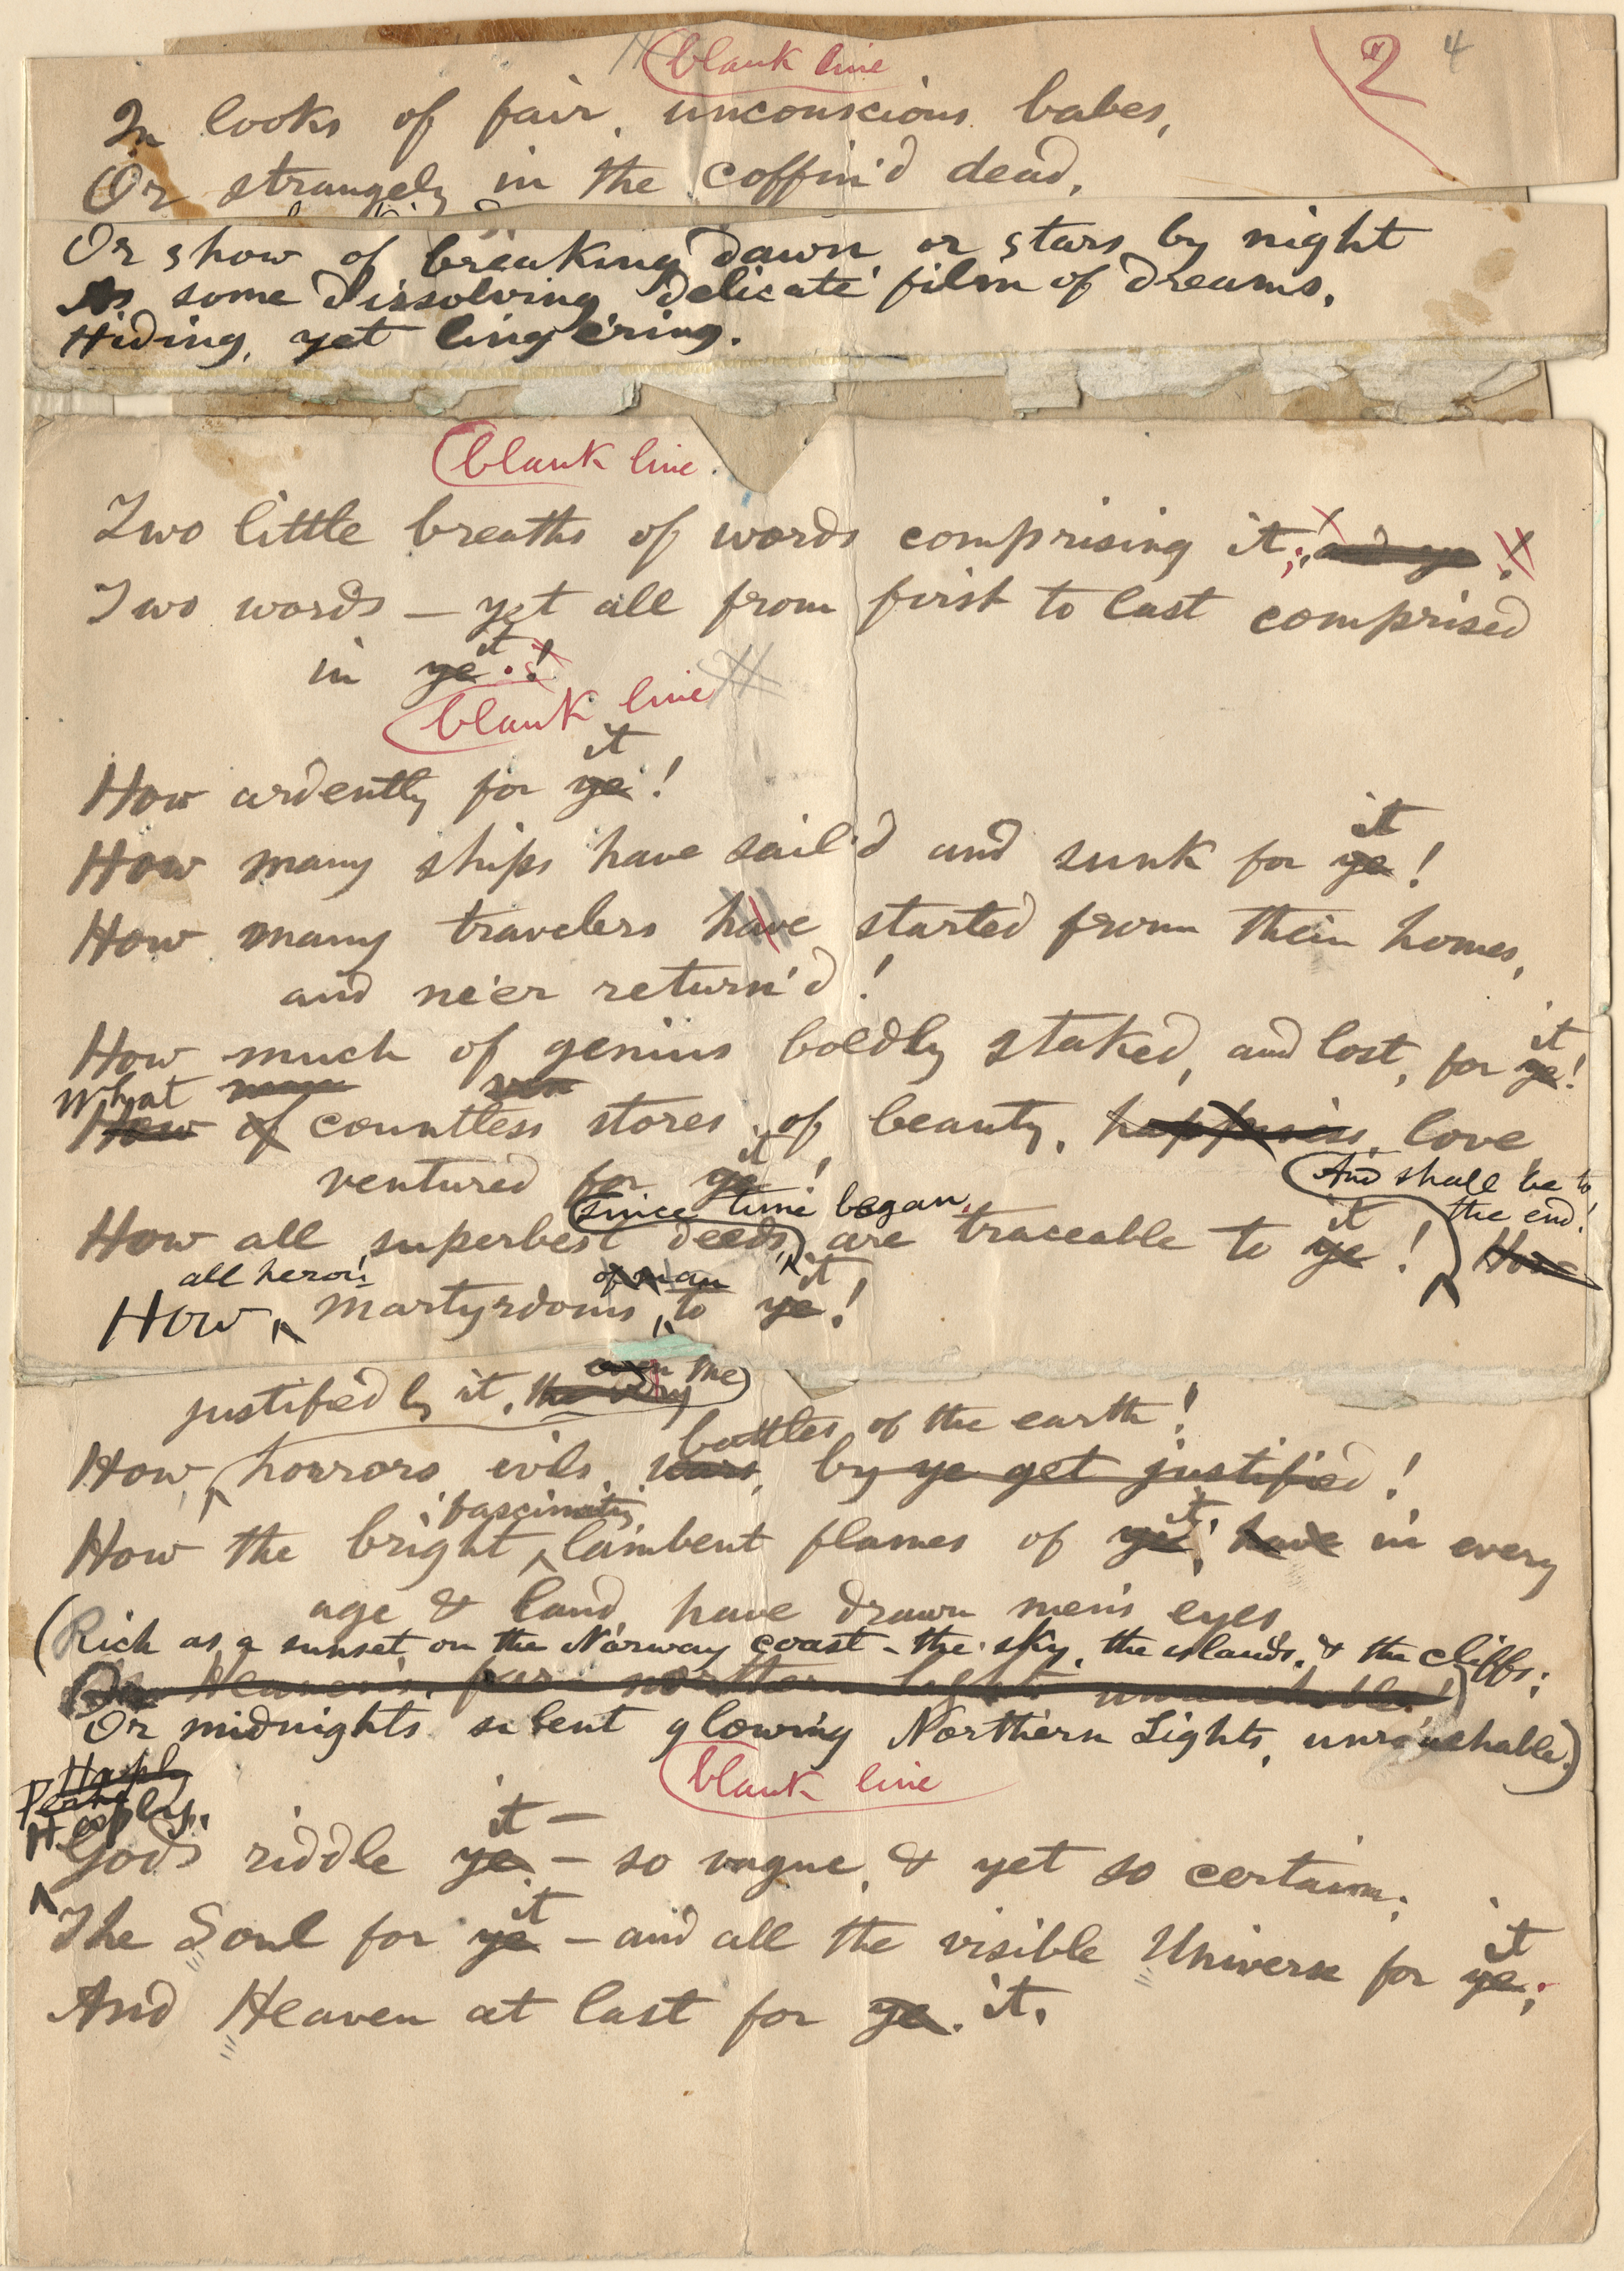 Content manuscript and corrected proof of a riddle song a poem which first appeared in the tarrytown sunnyside press on 3 april 1880